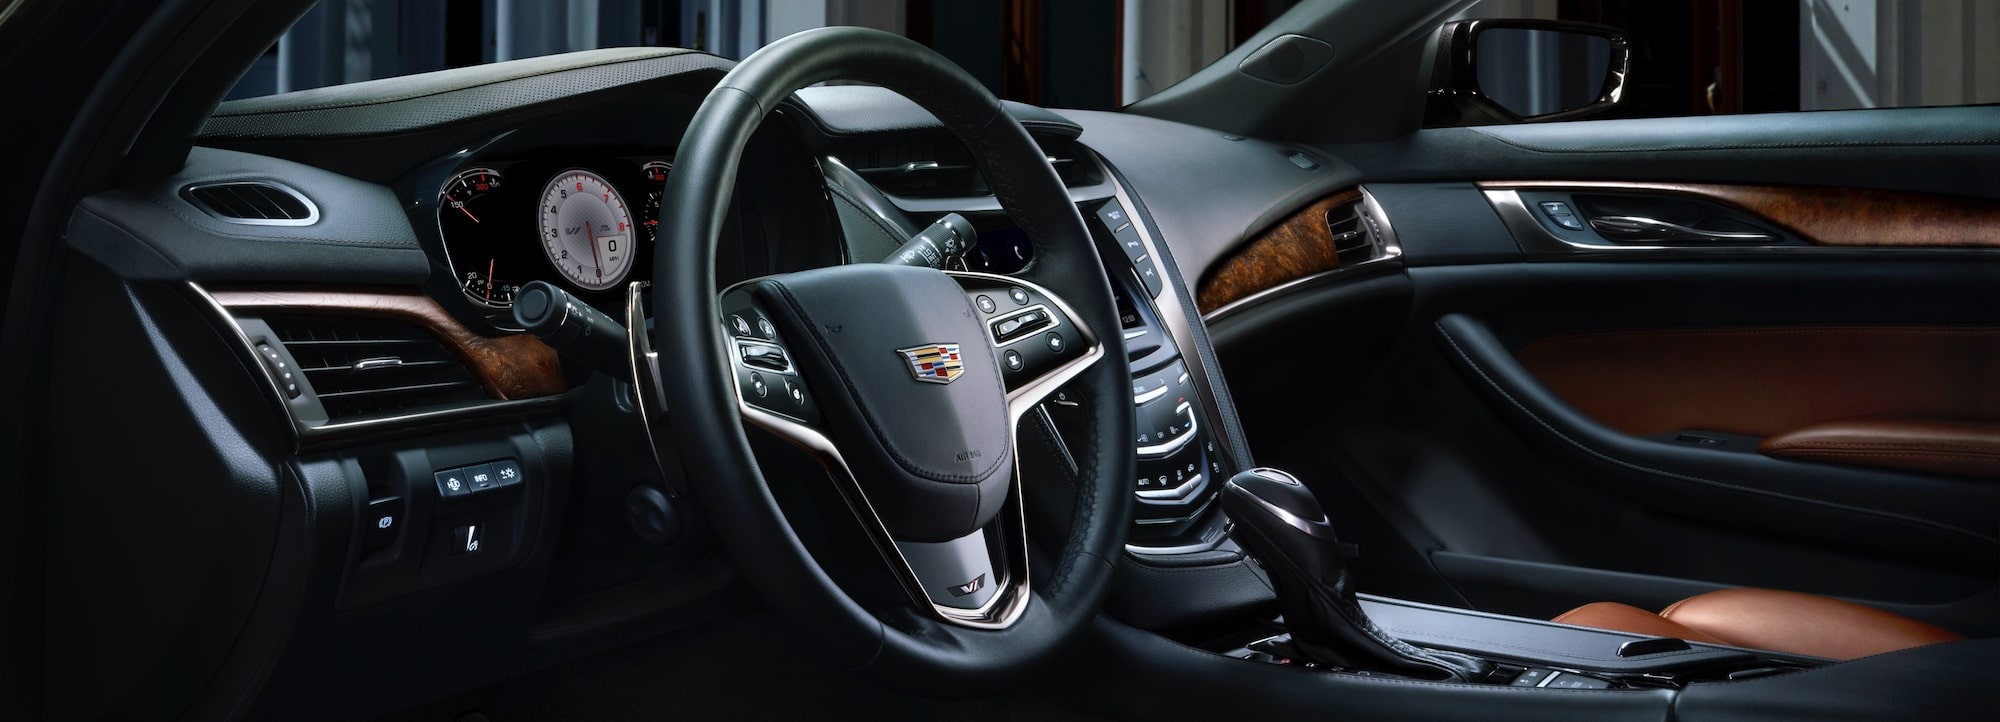 Cadillac Cts Interior Diagram Application Wiring Ats Fuse Box Trusted Diagrams U2022 Rh Caribbeanblues Co Location